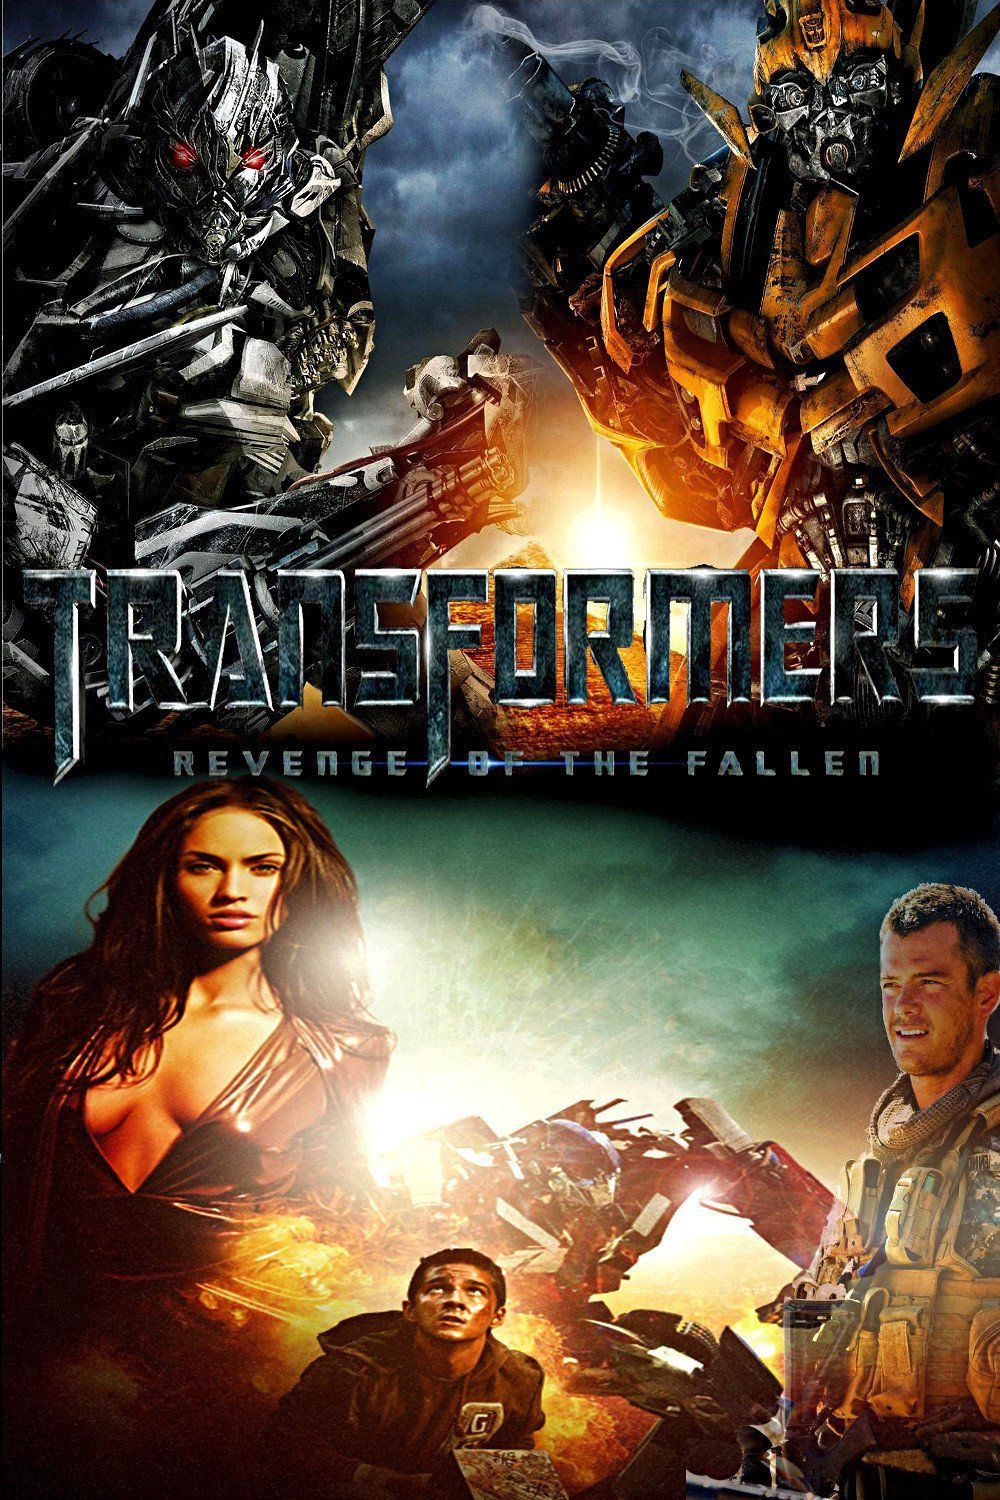 Transformers Revenge Of The Fallen 2009 Movie Review Revenge Of The Fallen Transformers Film Best Movie Posters